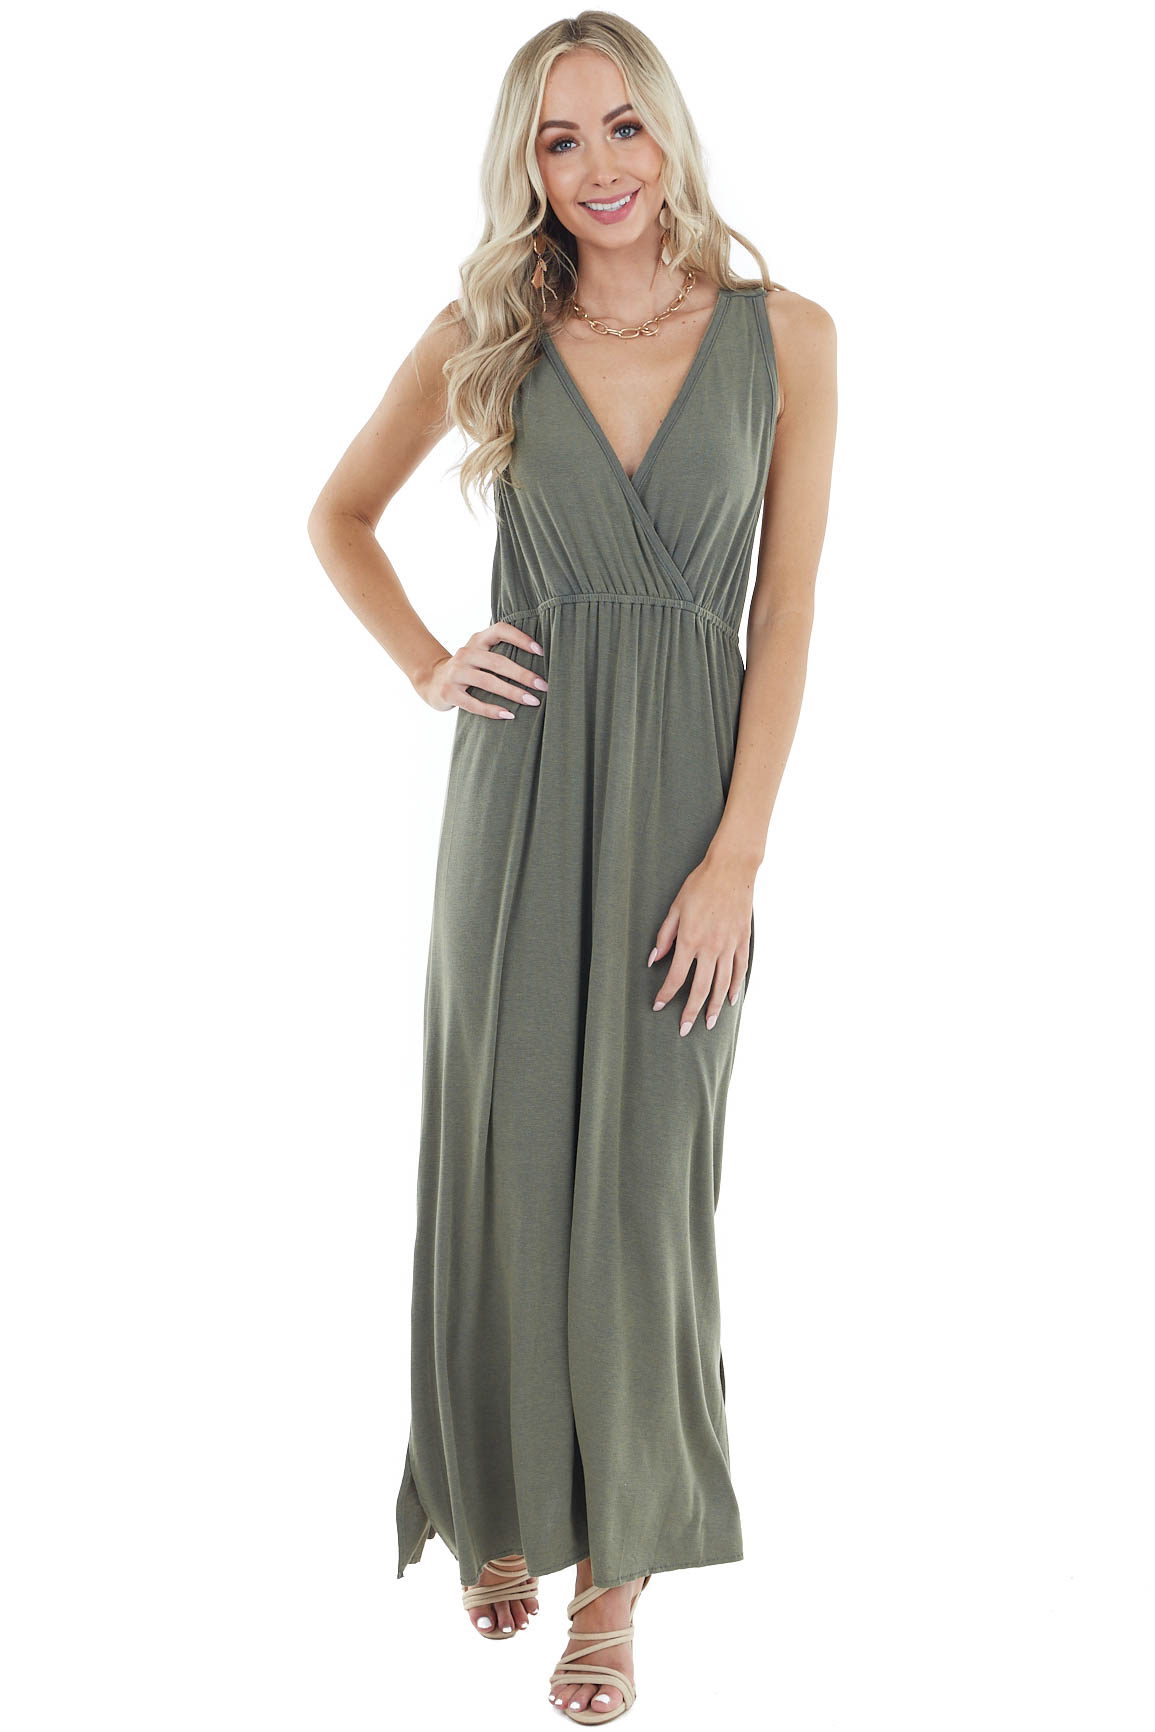 Dusty Olive Surplice Sleeveless Maxi Dress with Side Slit